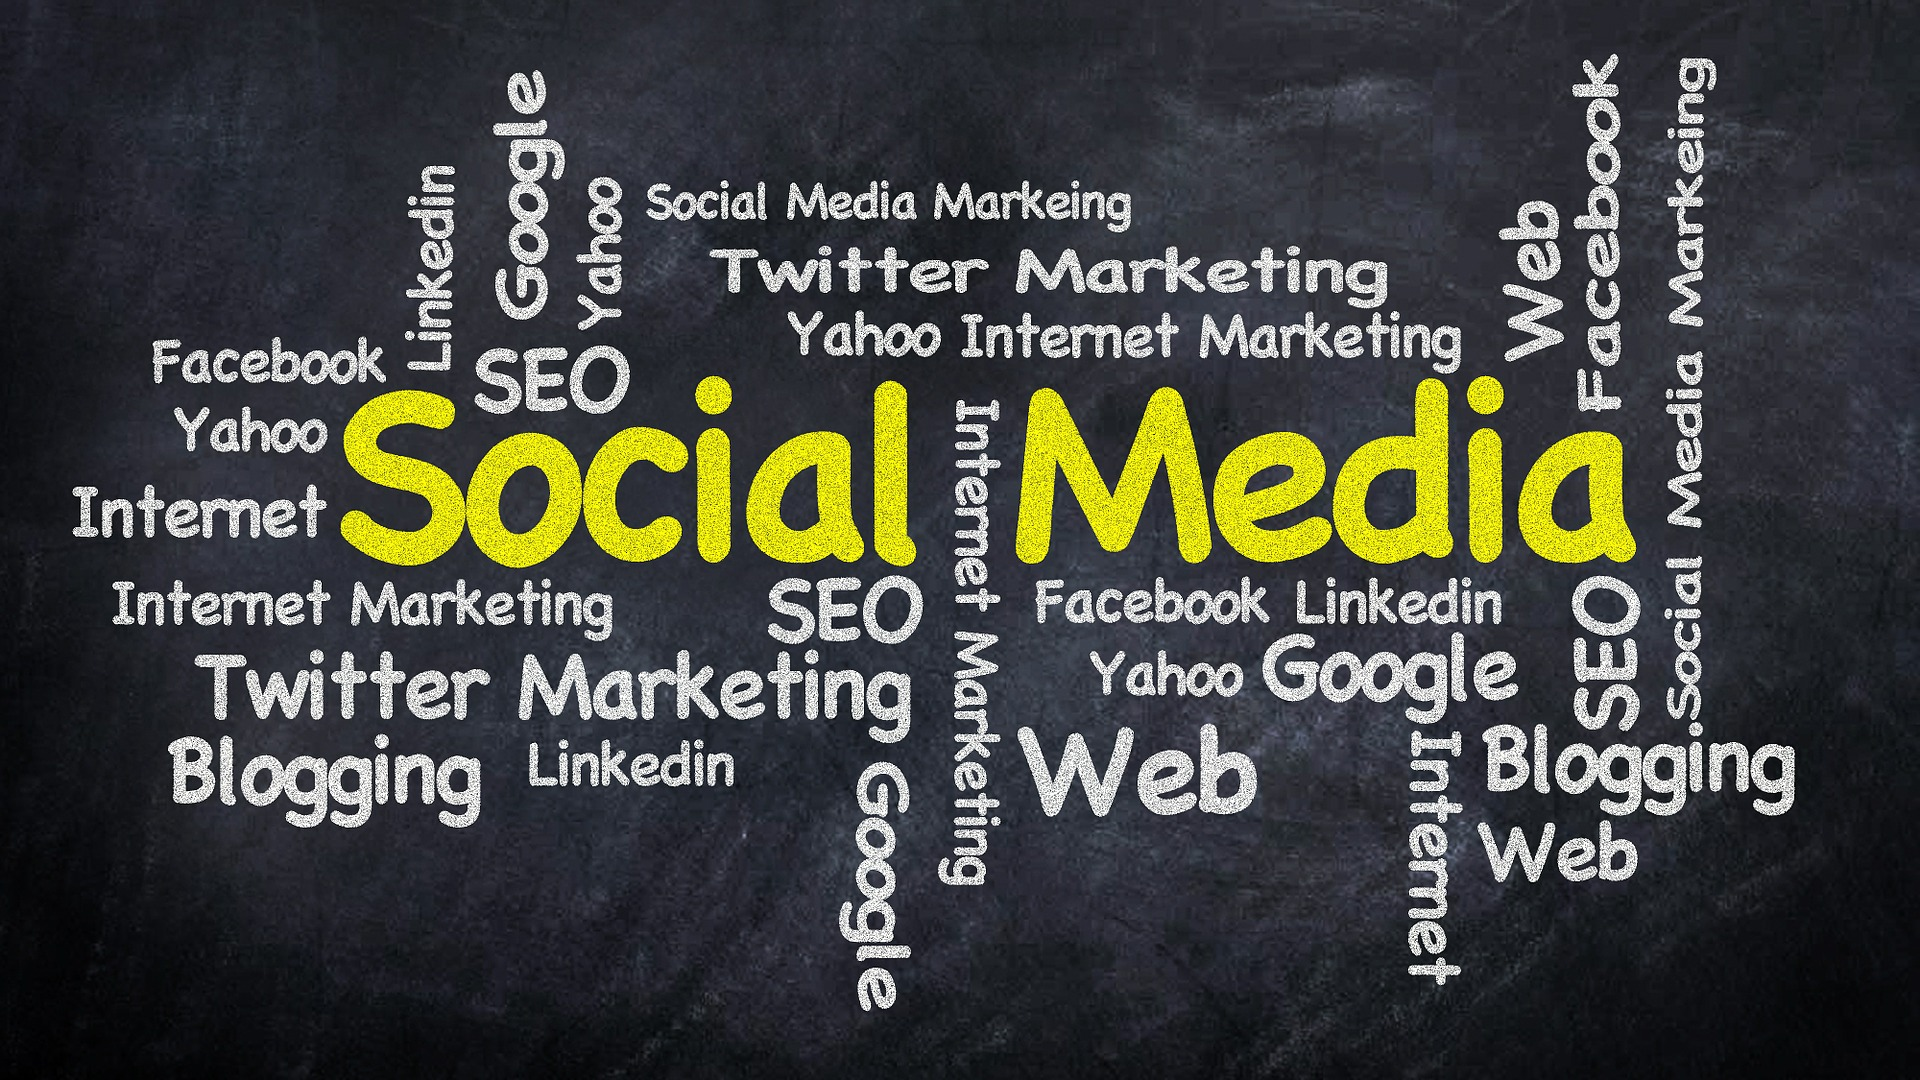 How to Make your Website More Social Media Ready